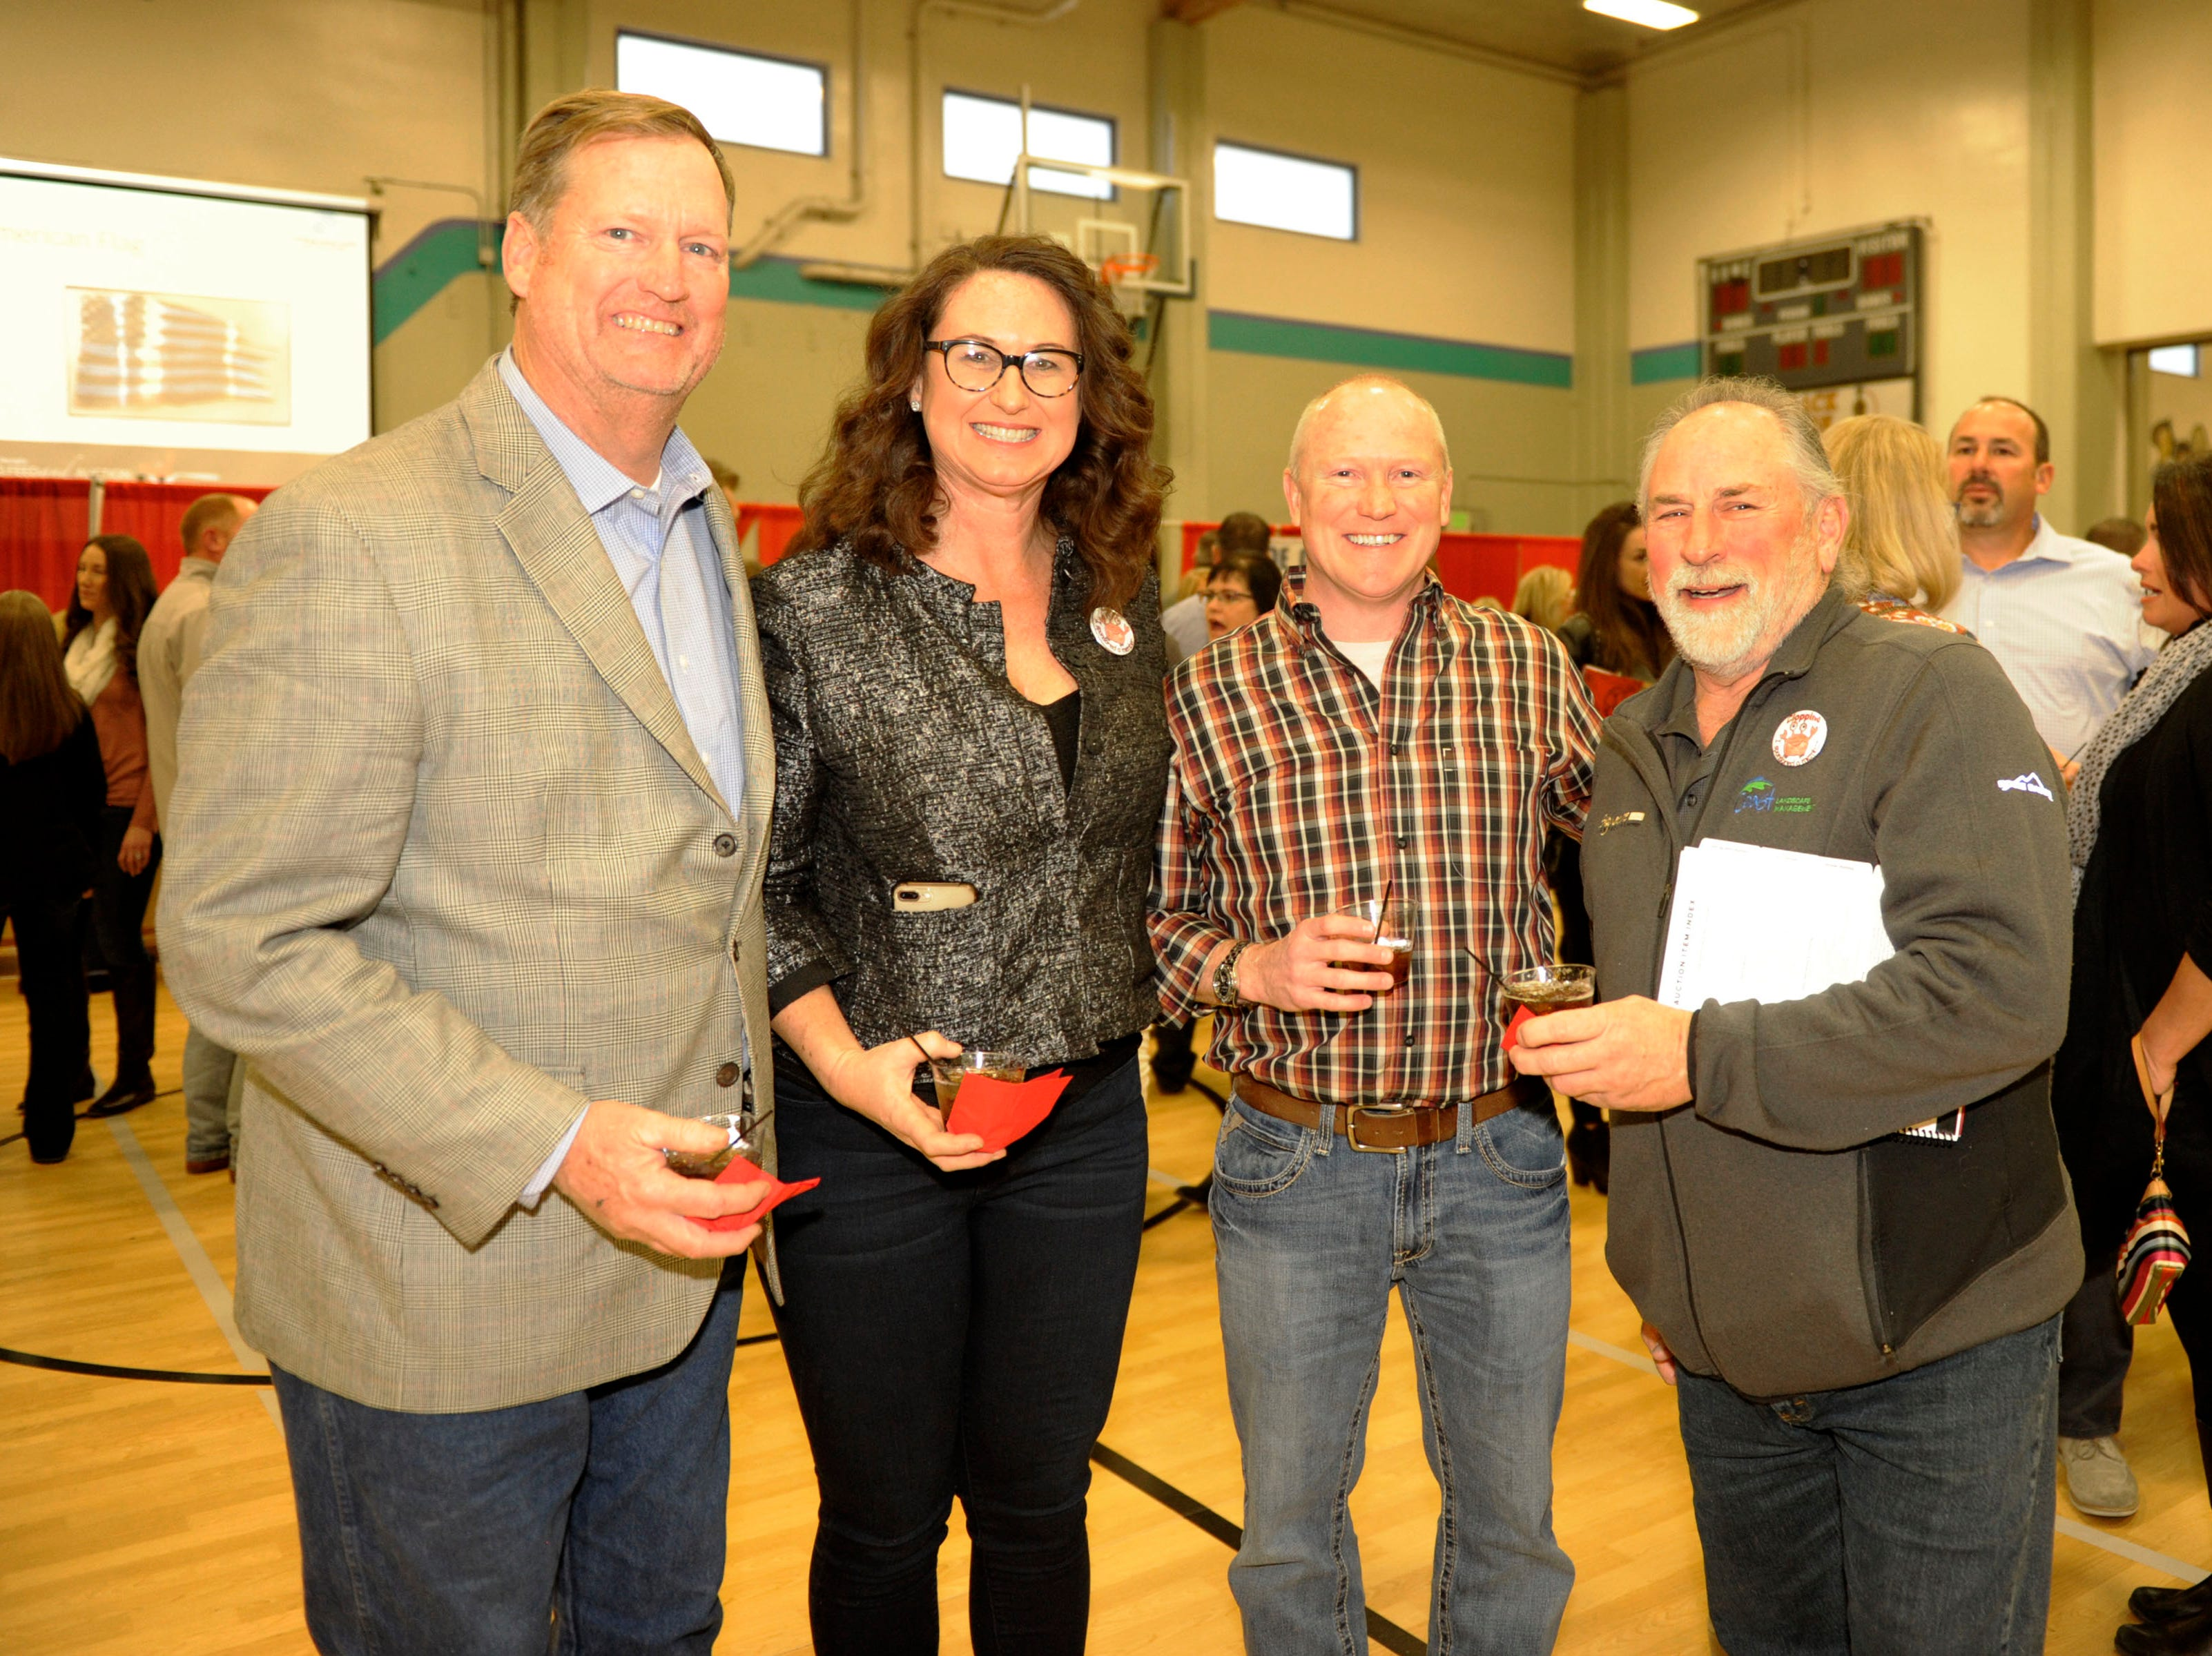 Scenes from the 39th Annual Jack T. Reviglio Cioppino Feed and Auction at the Boys & Girls Club of Truckee Meadows Sat., Feb. 23, 2019. Photos by Lisa J. Tolda/Special to the RGJ.